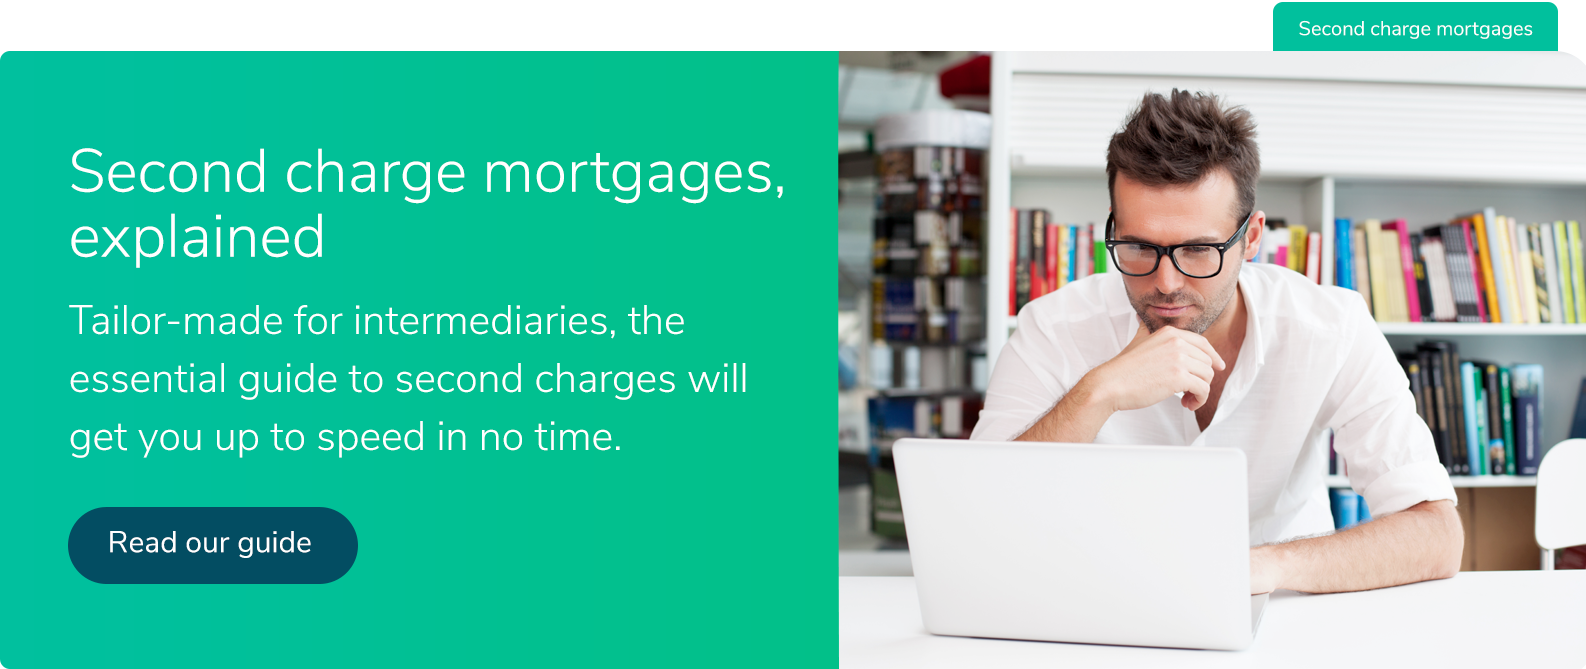 Second charge mortgages, explained